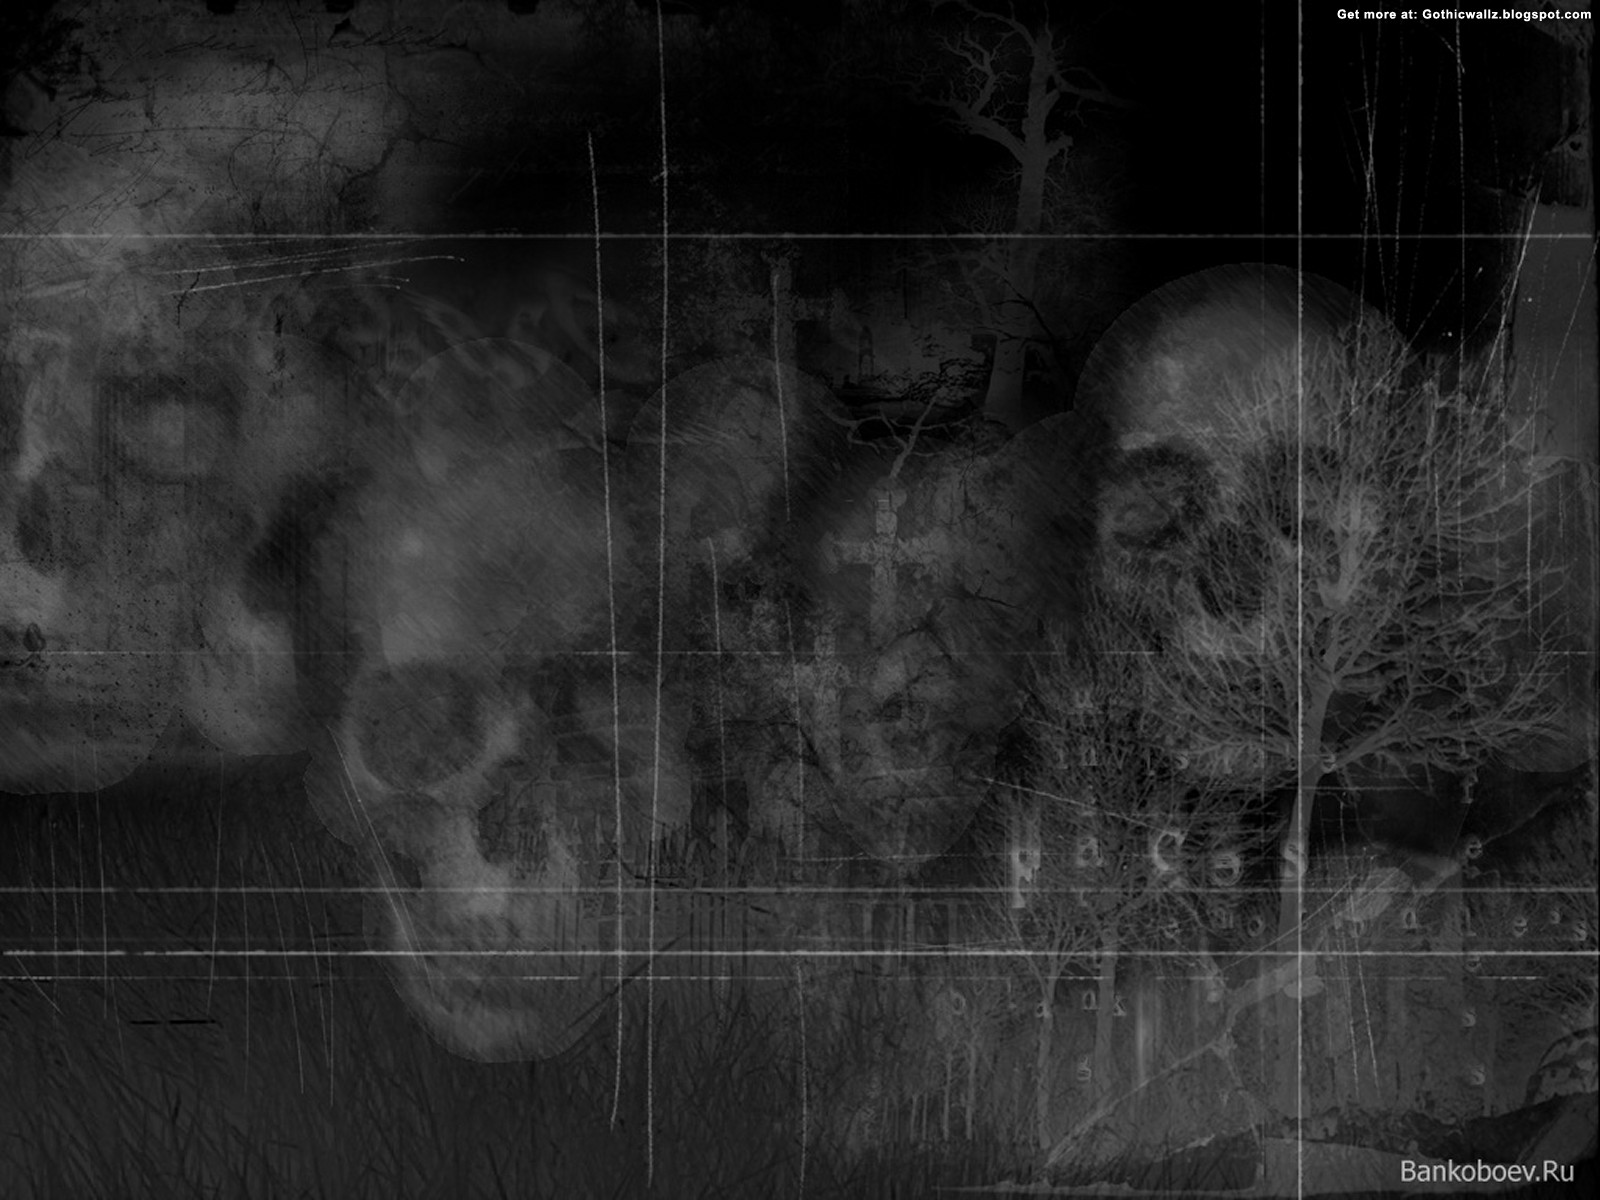 Invading Skulls | Gothic Wallpaper Download